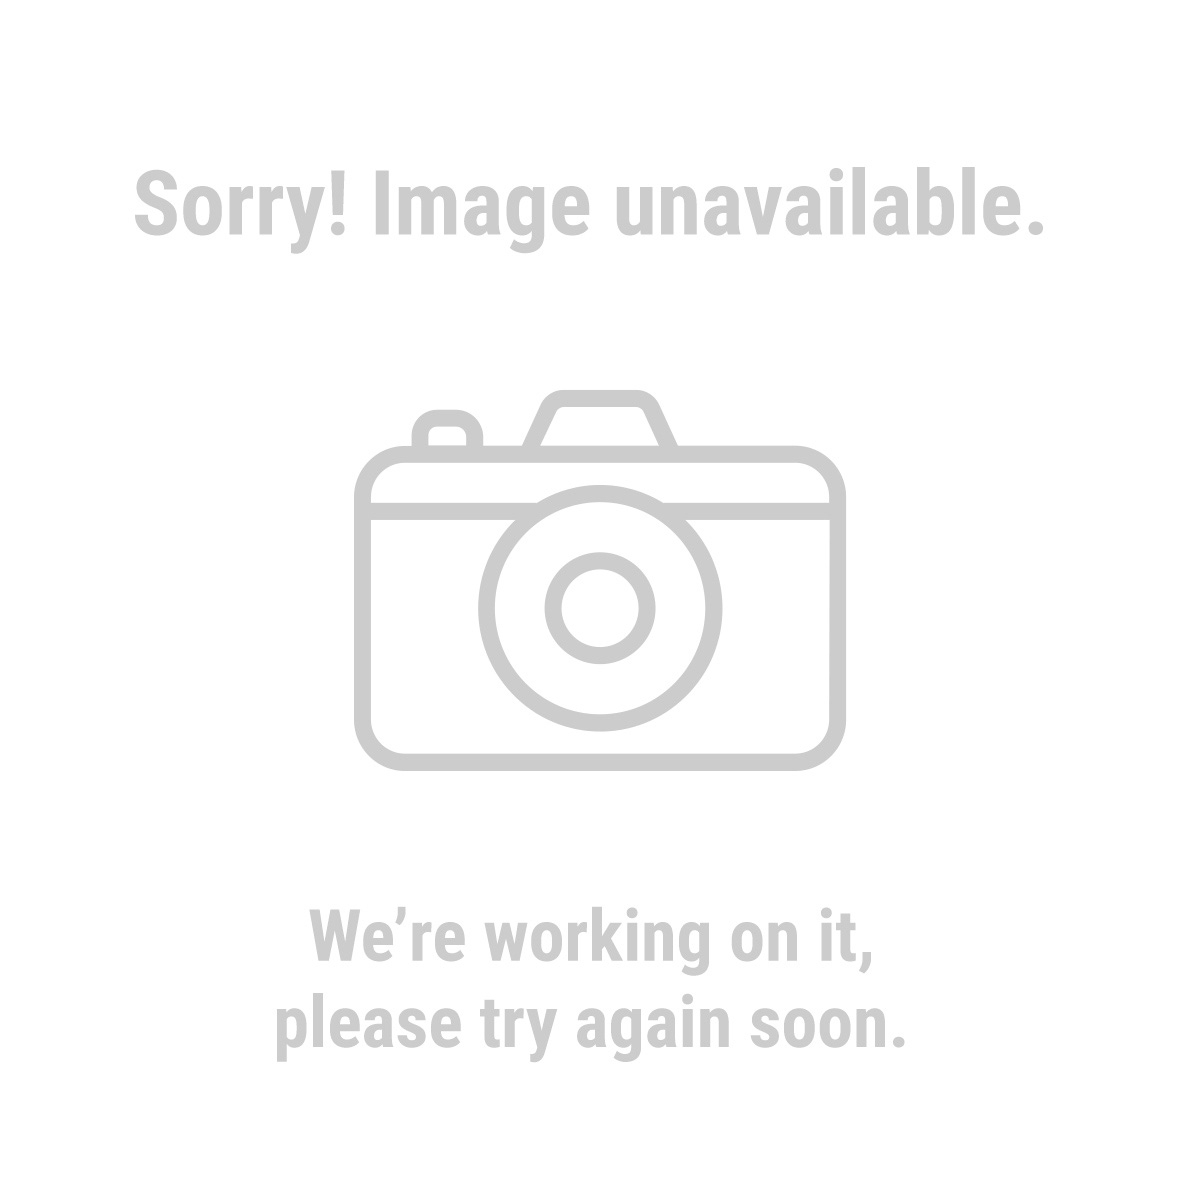 Warrior® 69598 3-3/4 in., 120 Grit Hook and Loop Triangle Sanding Pads 5 Pc